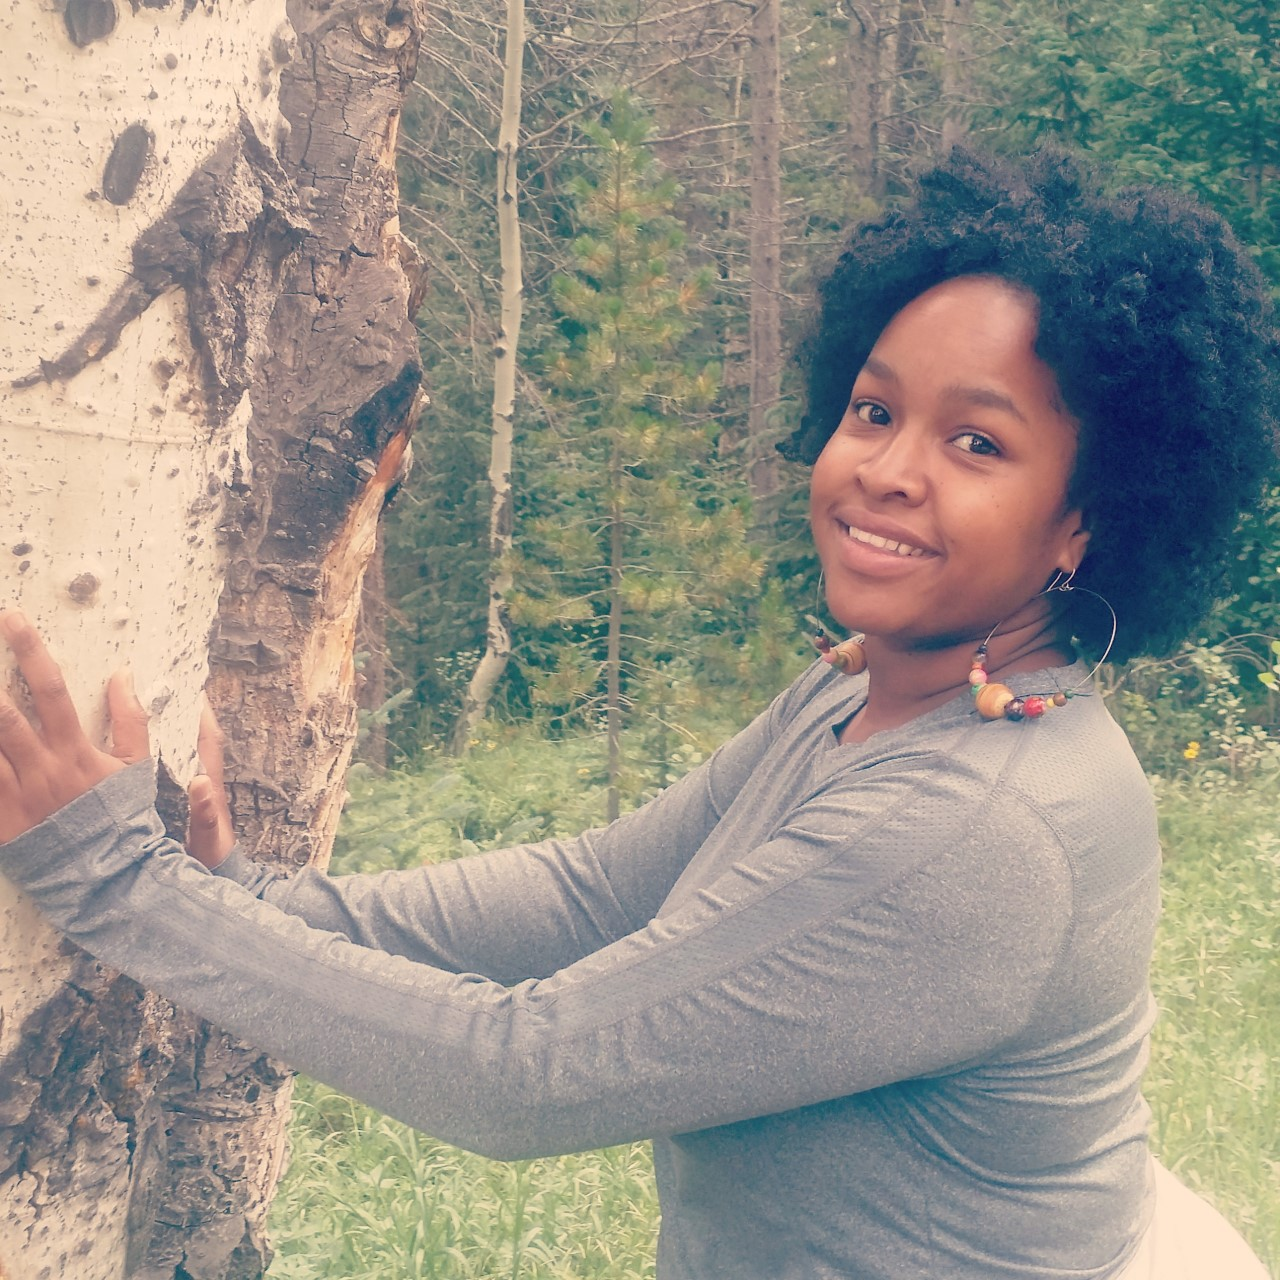 """Aishah Muhammad  is a 2018 Graduate of Satya's 200 hr POC Yoga Teacher Training program. She has been creating one of a kind jewelry since the tender age of 10. At 16 she started a business called """"Spiders and Bumble Bees"""" that produced much local acclaim. She is the co-owner of Jiridon apothecary and teaches community about the medicine that surrounds them in their everyday urban life. Born 10 of 12 artistic siblings, Aishah grew up heavily involved in crafts such as sewing, painting, and creating jewelry. She is fusing her love of stones with a healing practice that will give back to the community. Her goal is to create jewelry that is well beyond the realm of fashion. She hopes that through her jewelry she can also help those who suffer from anxiety, depression and other conditions that negatively affect the heart, mind and spirit   Class Style:  Gentle, nourishing, guided with feminine wisdom, therapeutic and soulful."""